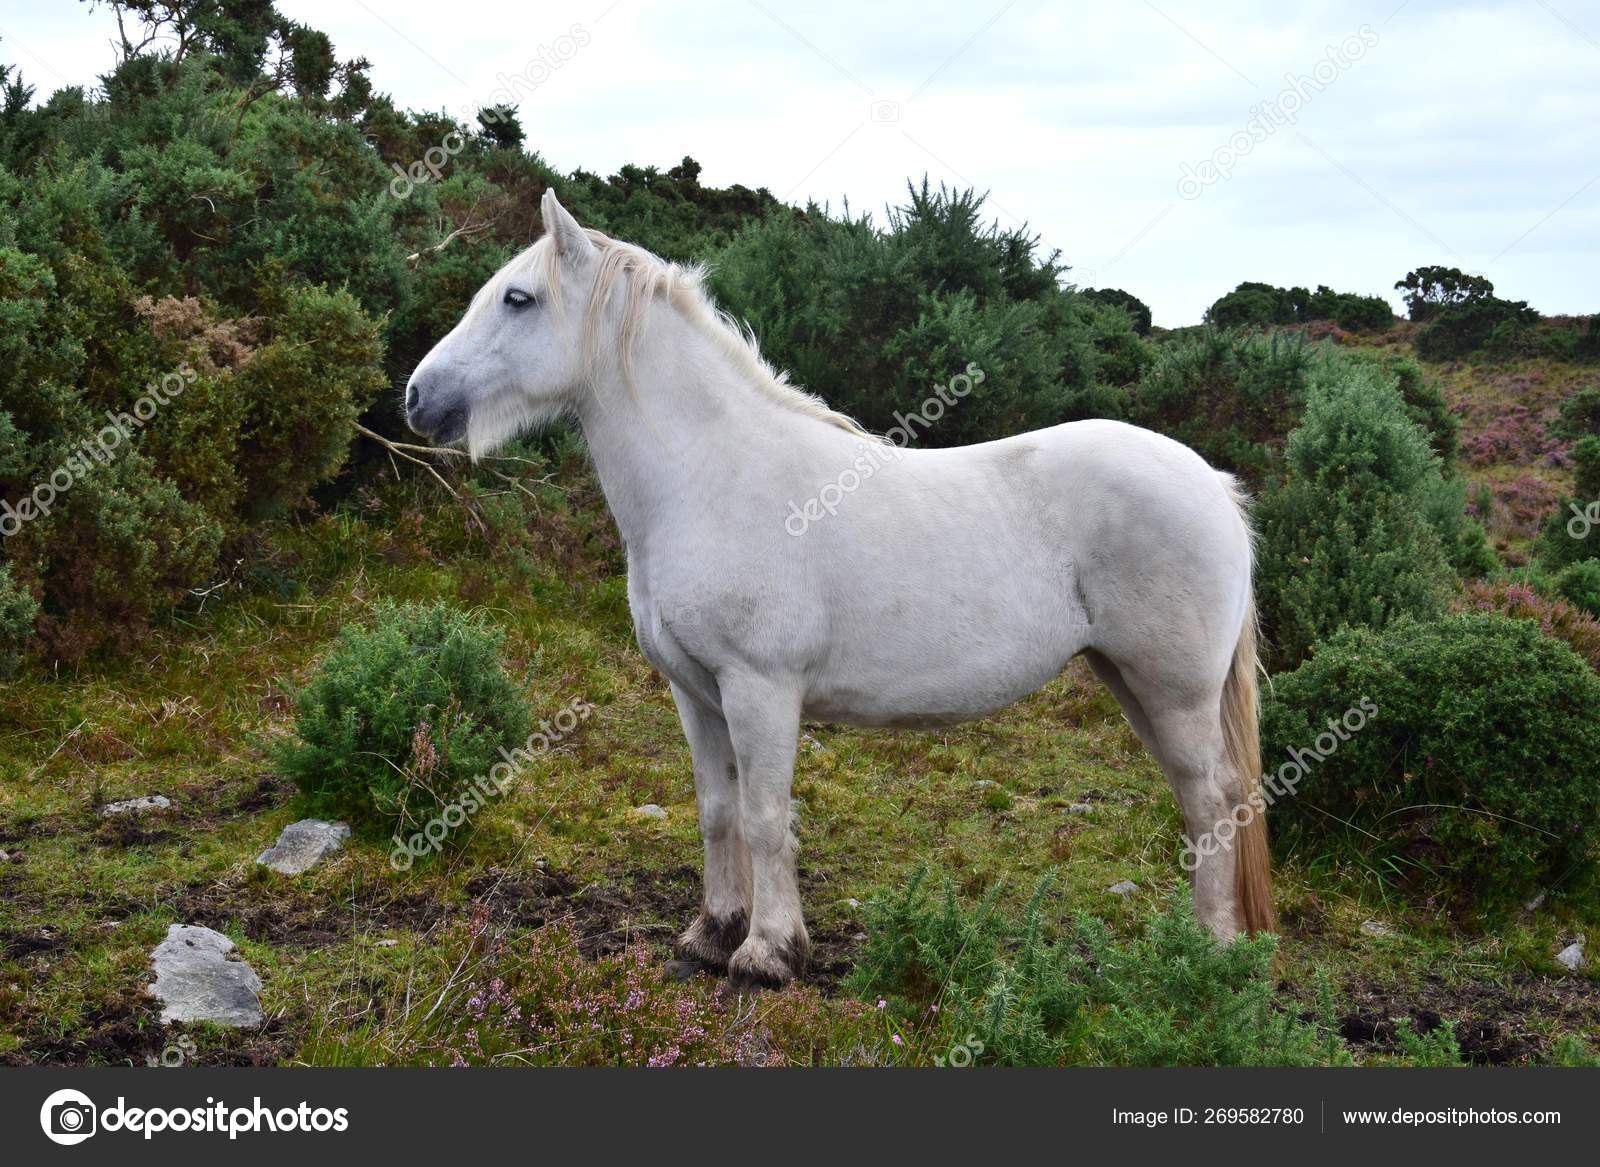 Beautiful White Horse In Ireland Stock Photo C Susannefritzsche 269582780